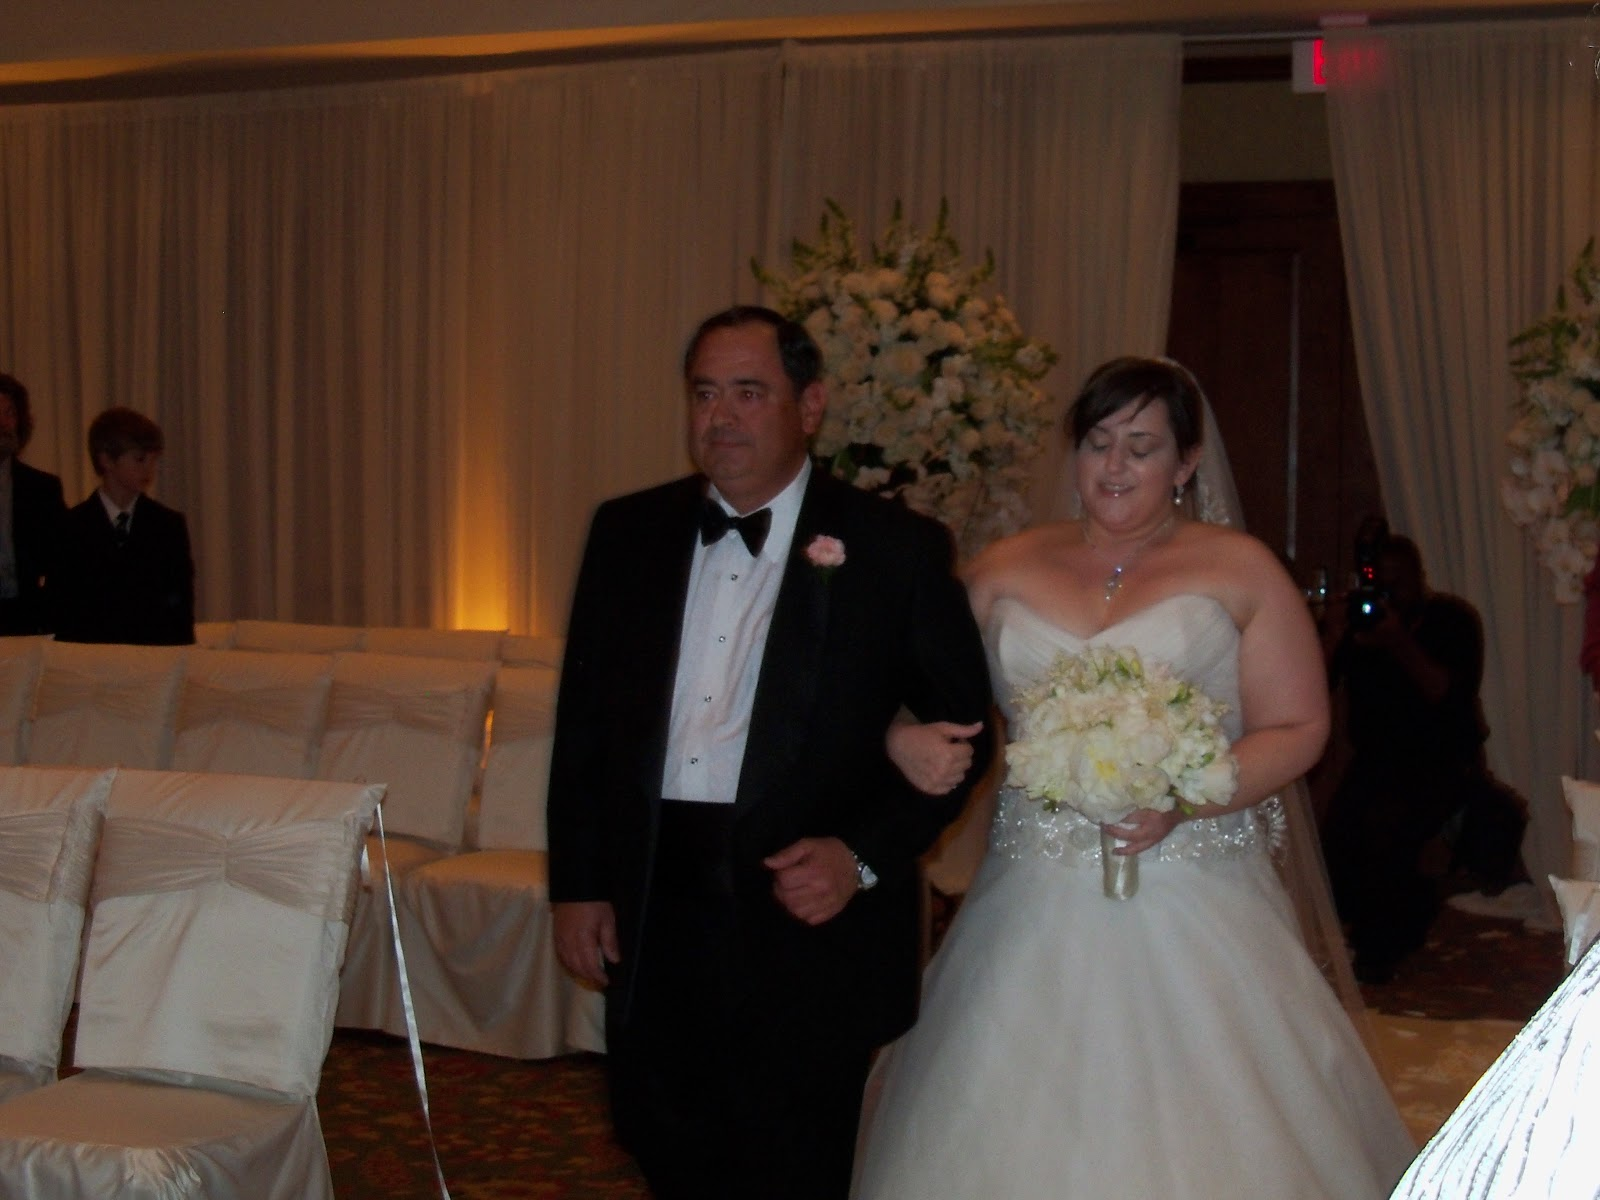 Megan Neal and Mark Suarez wedding - 100_8293.JPG